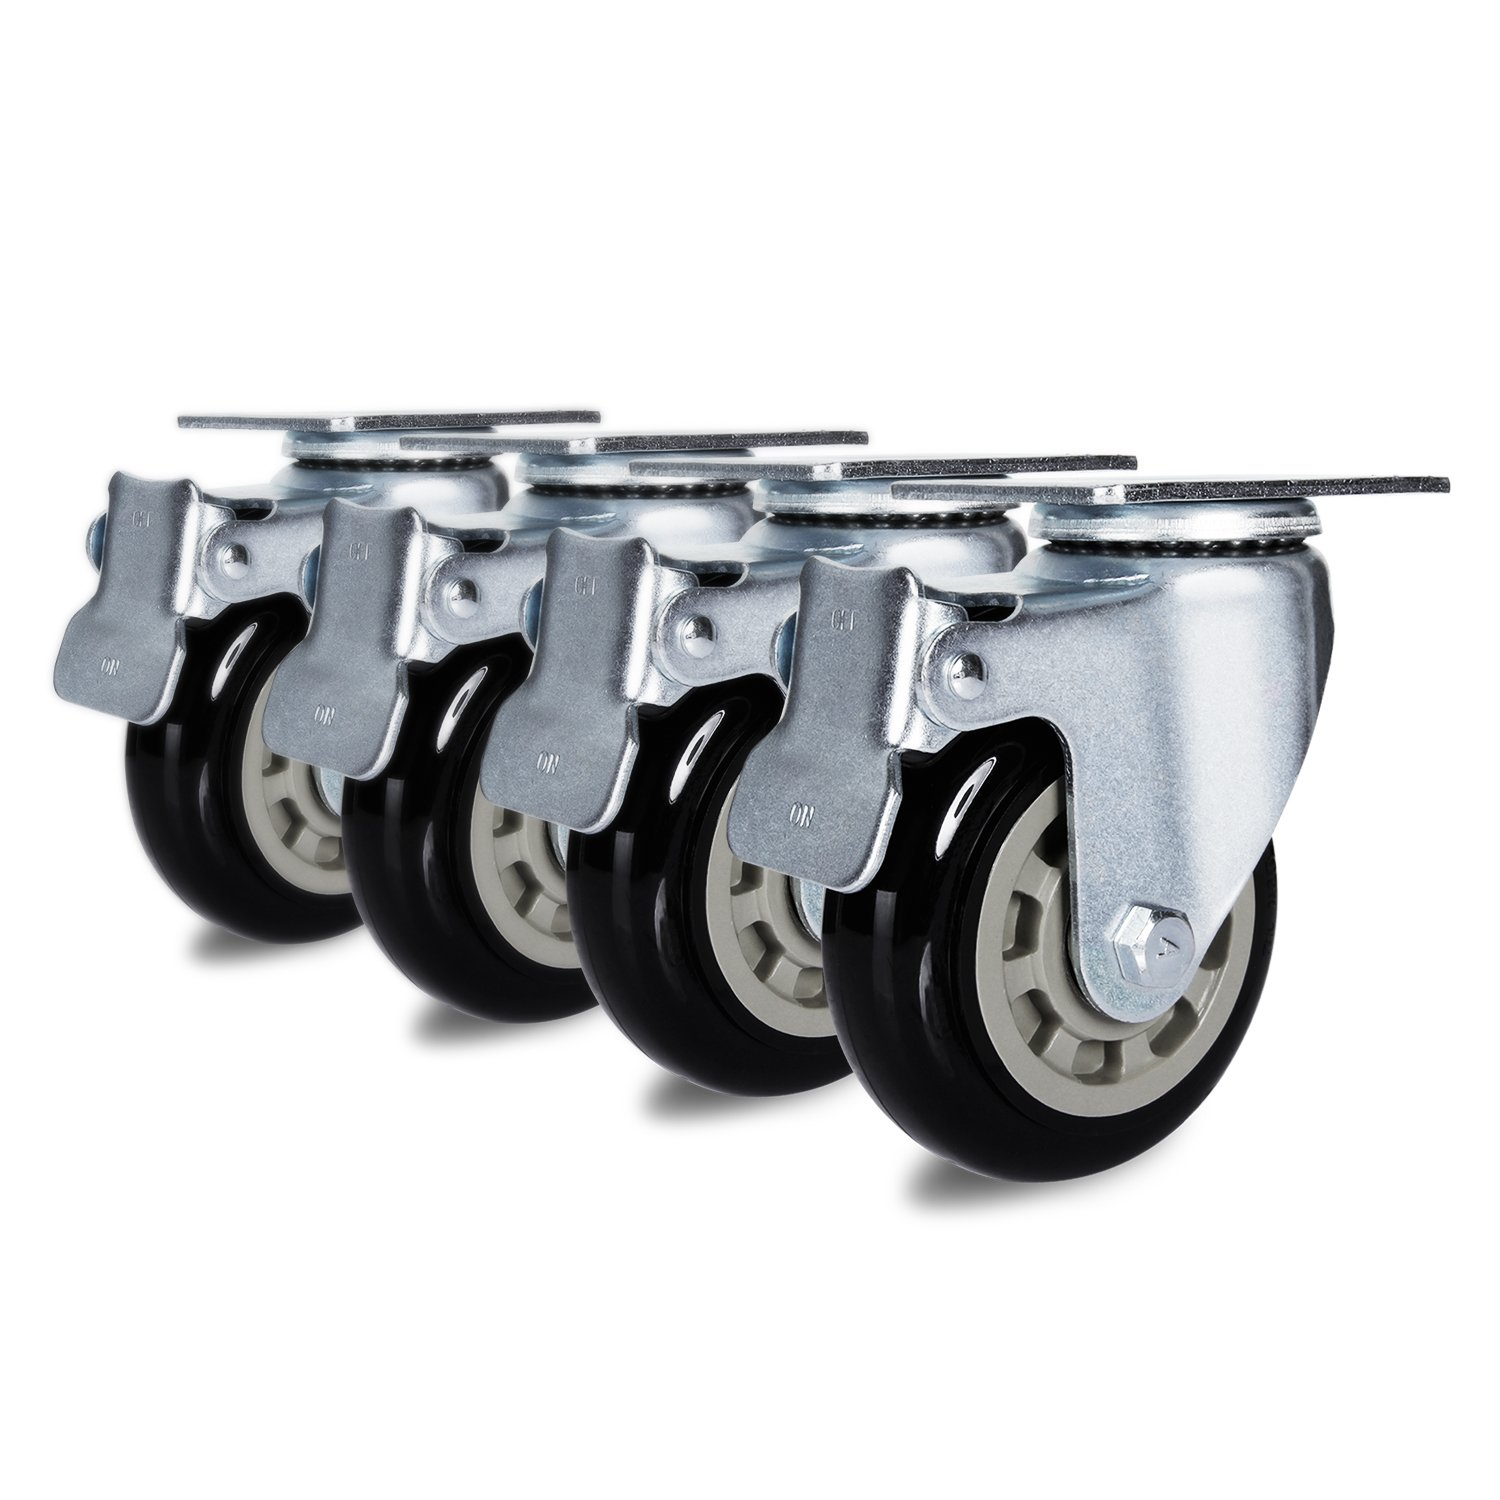 Antaprcis Caster Wheel Heavy Duty Swivel Wheels 360 Degree with Plate and Brake 4 Inches Set of 4 by Antaprcis (Image #1)